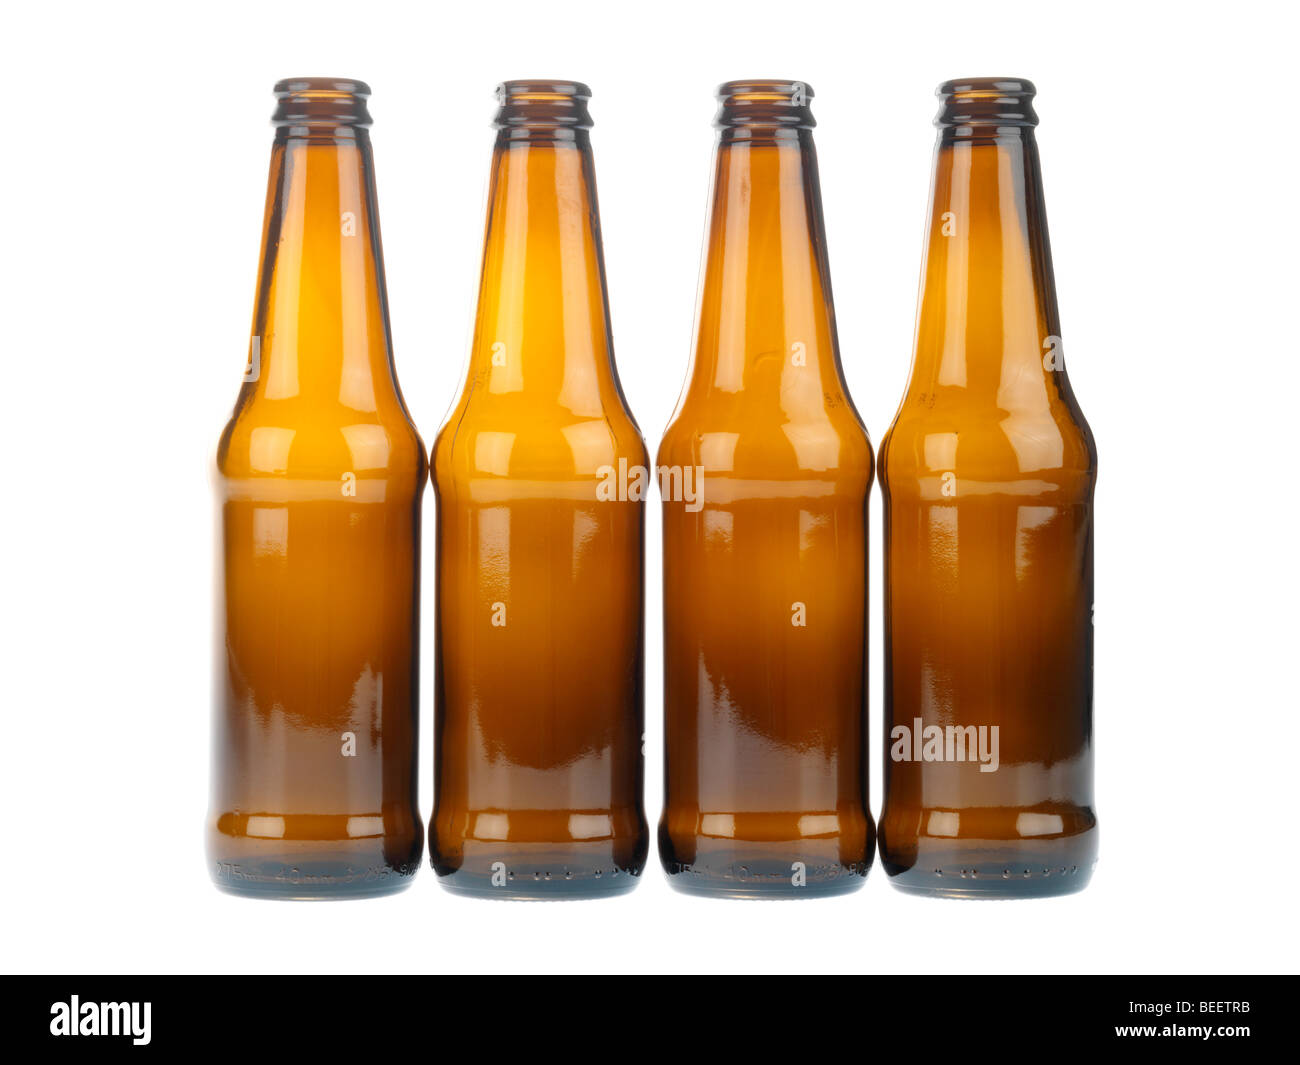 empty alcohol bottles stockfotos empty alcohol bottles bilder alamy. Black Bedroom Furniture Sets. Home Design Ideas